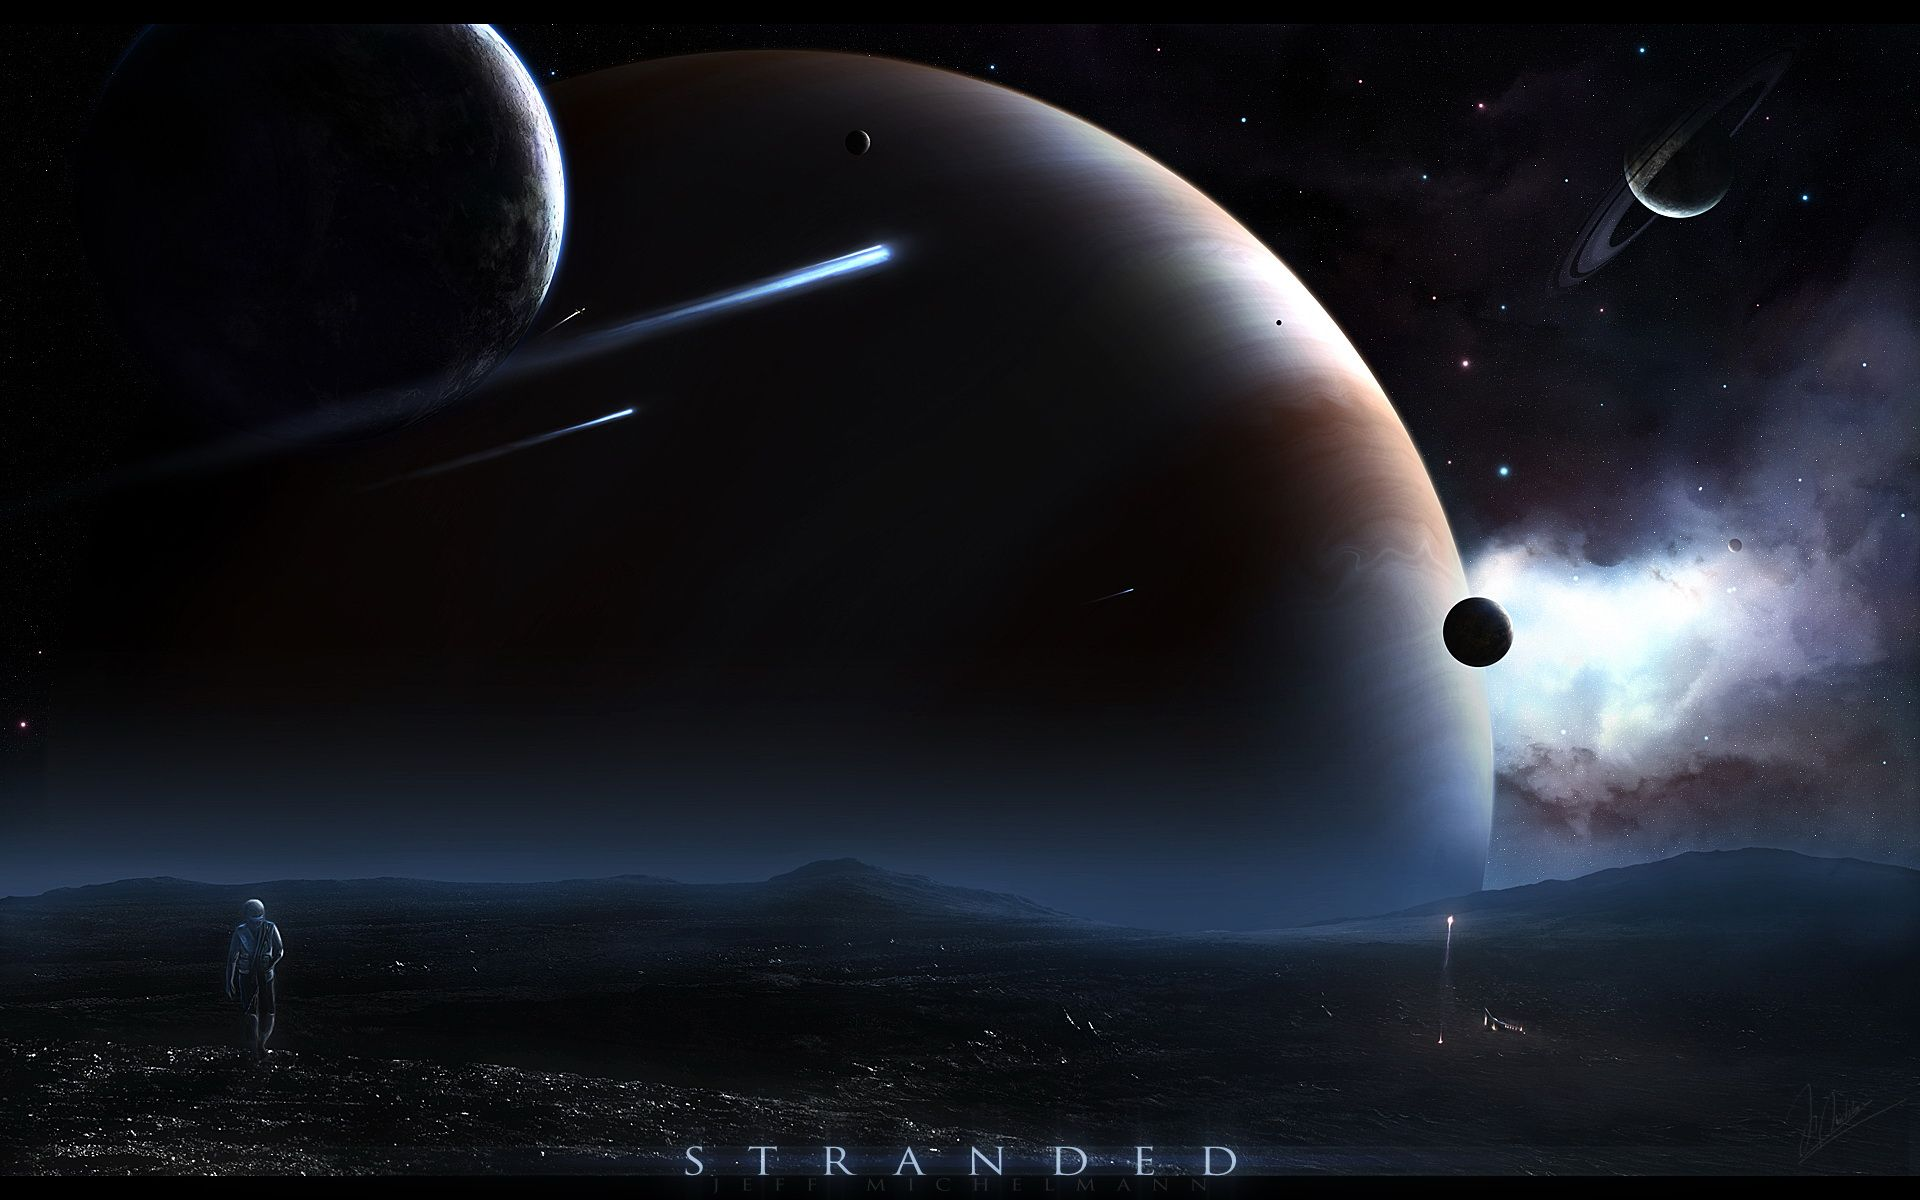 Space Fantasy Wallpaper Space Hd Widescreen Wallpapers